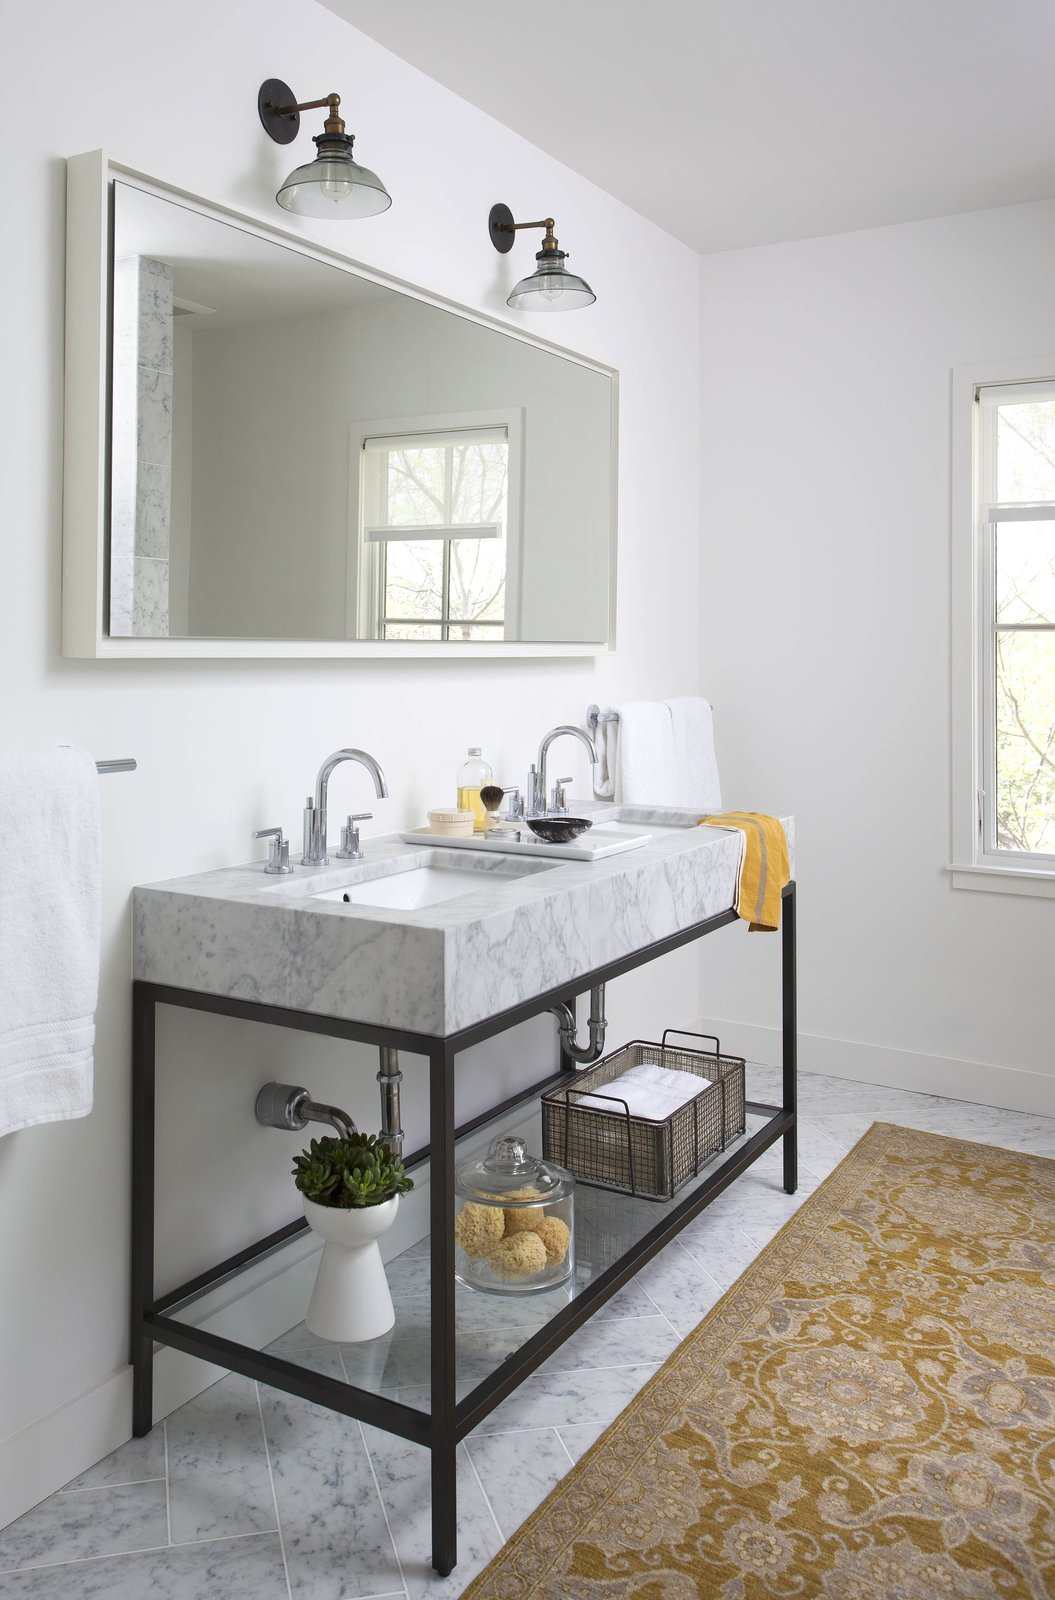 """White walls, a luxurious marble double-sink, and an area rug give this bathroom an inviting atmosphere. """"The natural light, open spaces, and light color palette make it a great place to wake up in the morning,"""" Flournoy says of his home. The sink is from Restoration Hardware and the rug is from West Elm. Tagged: Bath Room, Marble Counter, Marble Floor, Wall Lighting, Undermount Sink, and Rug Floor.  Photo 7 of 8 in Modern Take on a Texas Farmhouse"""